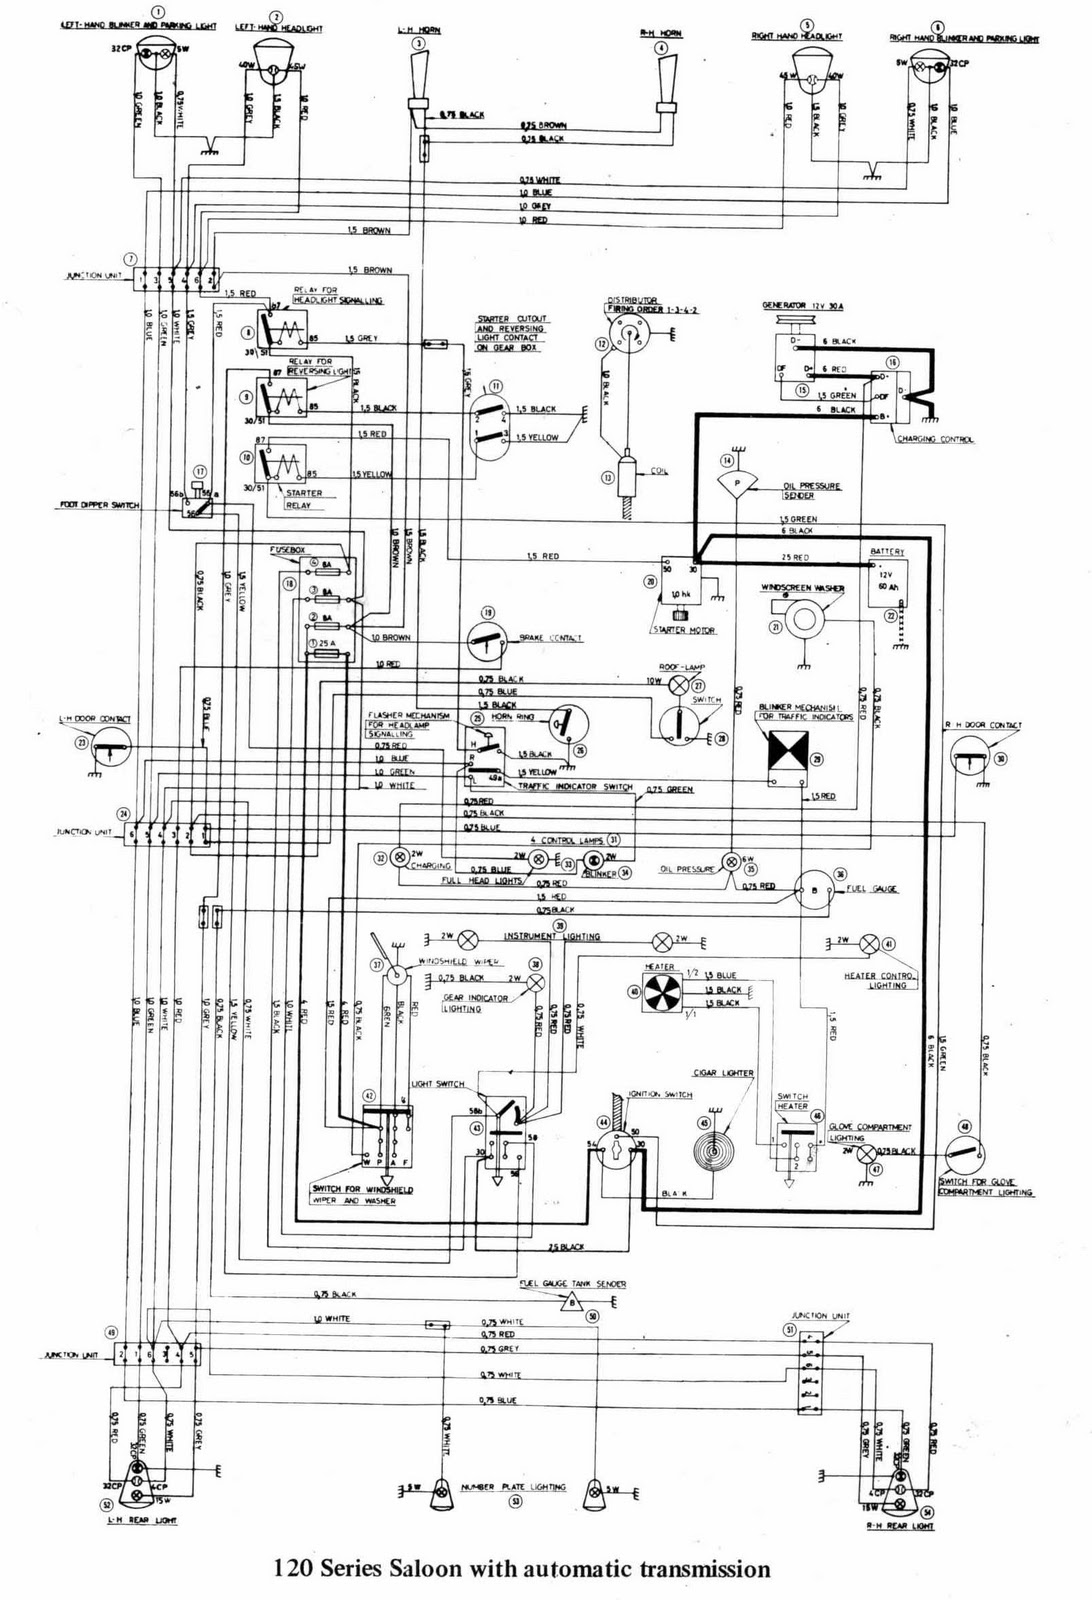 medium resolution of volvo fh radio wiring diagram best 2005 volvo truck wiring diagrams contemporary electrical